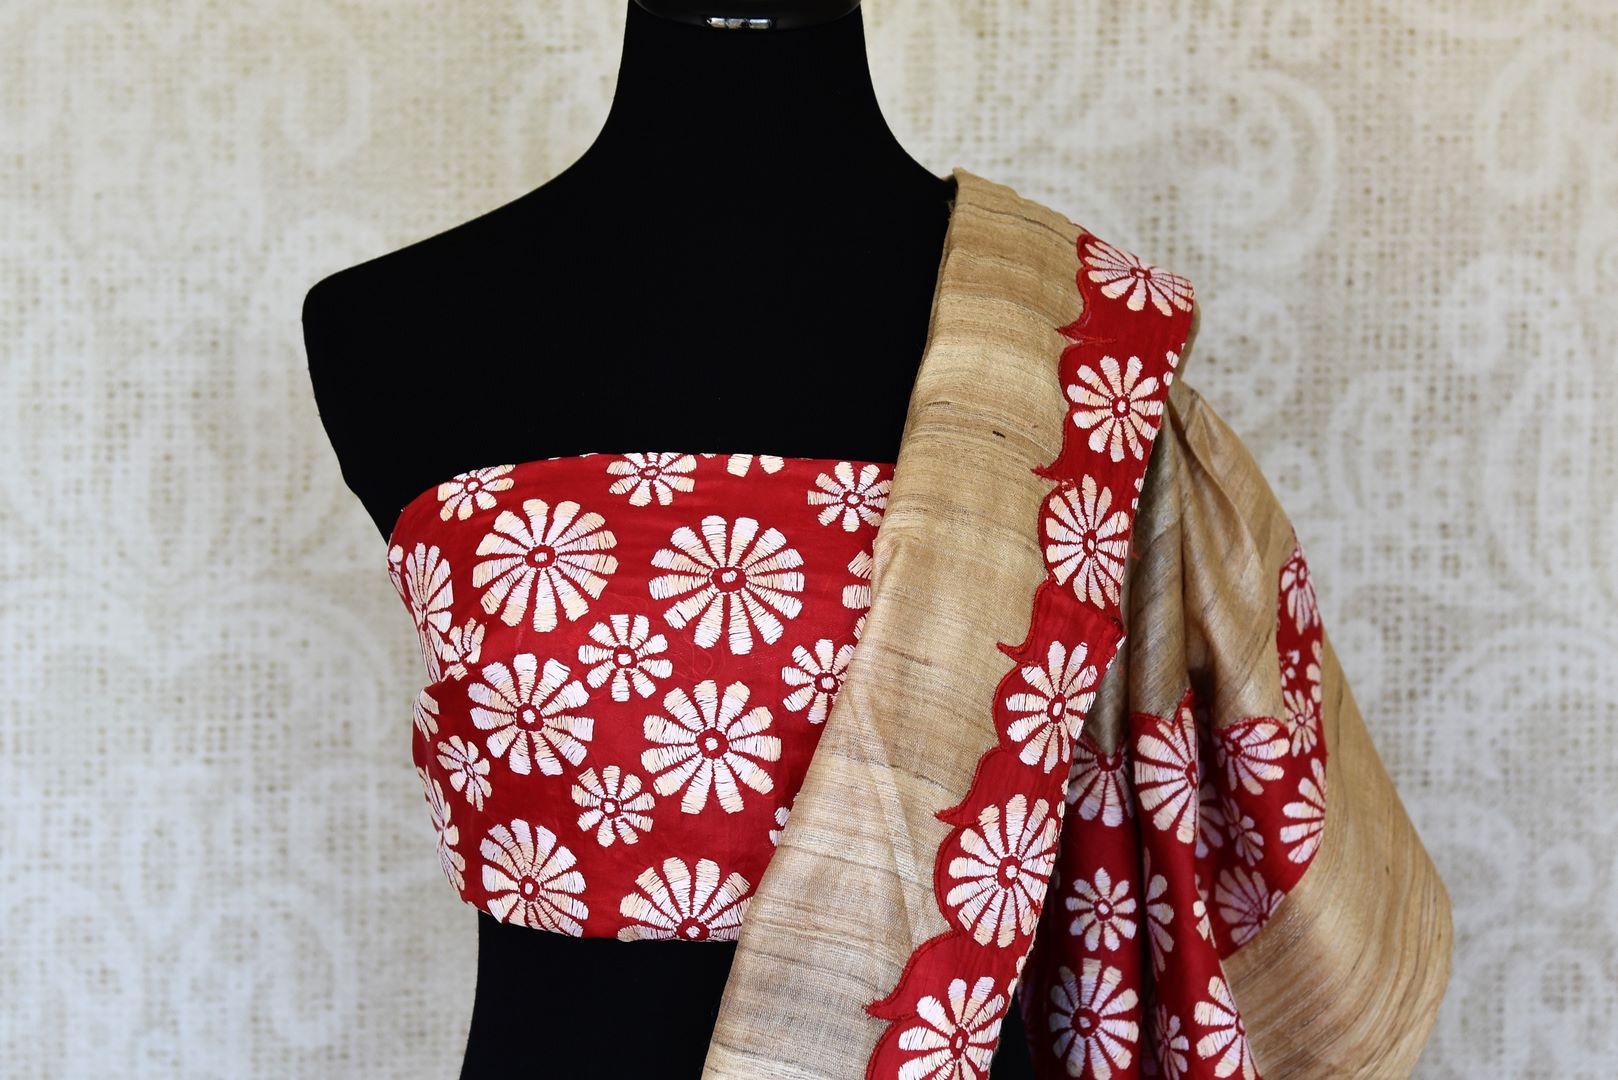 Buy beige and red floral Kantha work tussar saree online in USA. Enhance your ethnic style with exquisite Indian handloom sarees from Pure Elegance Indian clothing store in USA. Pick from a range of vibrant silk sarees, Banarasi saris, Kanchipuram sarees for a stunning ethnic style.-blouse pallu